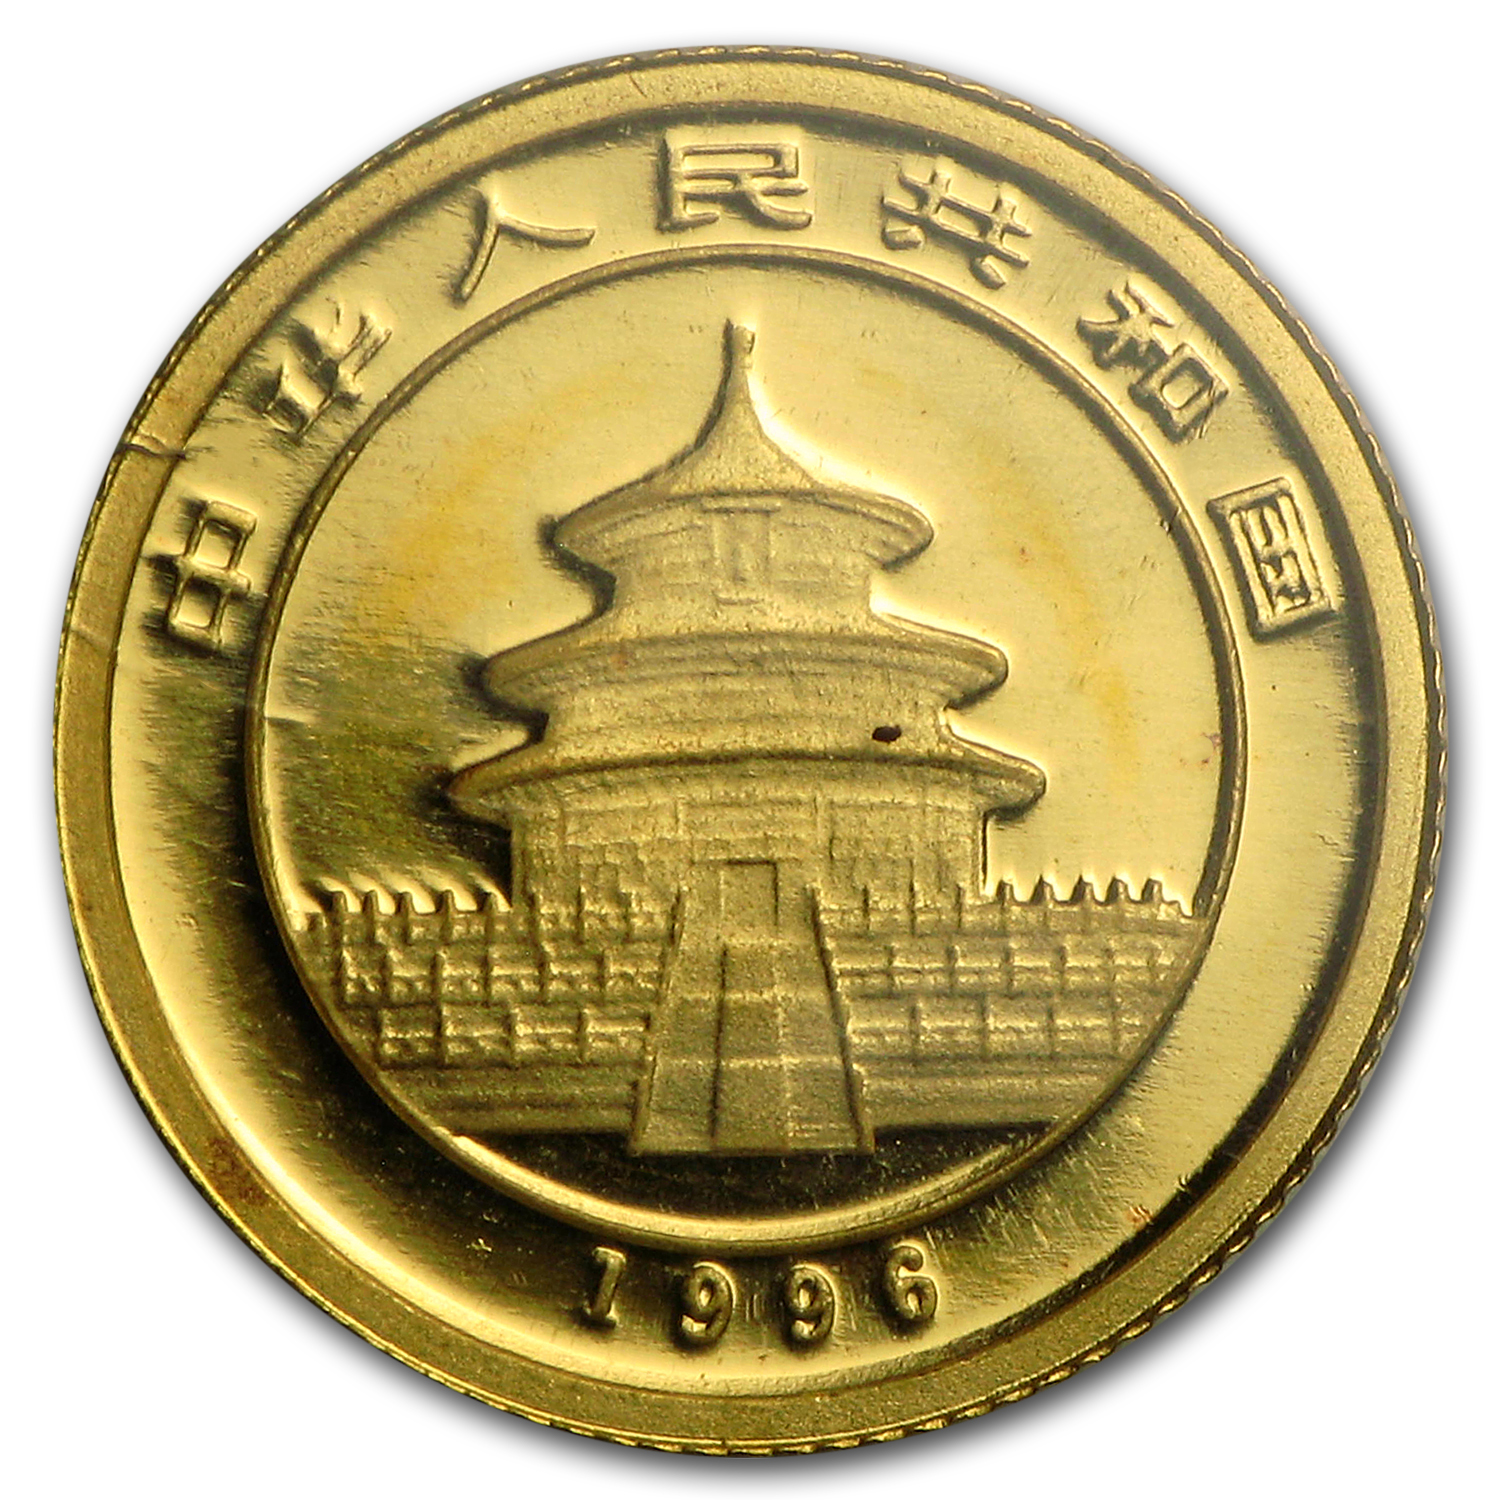 1996 China 1/20 oz Gold Panda Small Date BU (Sealed)